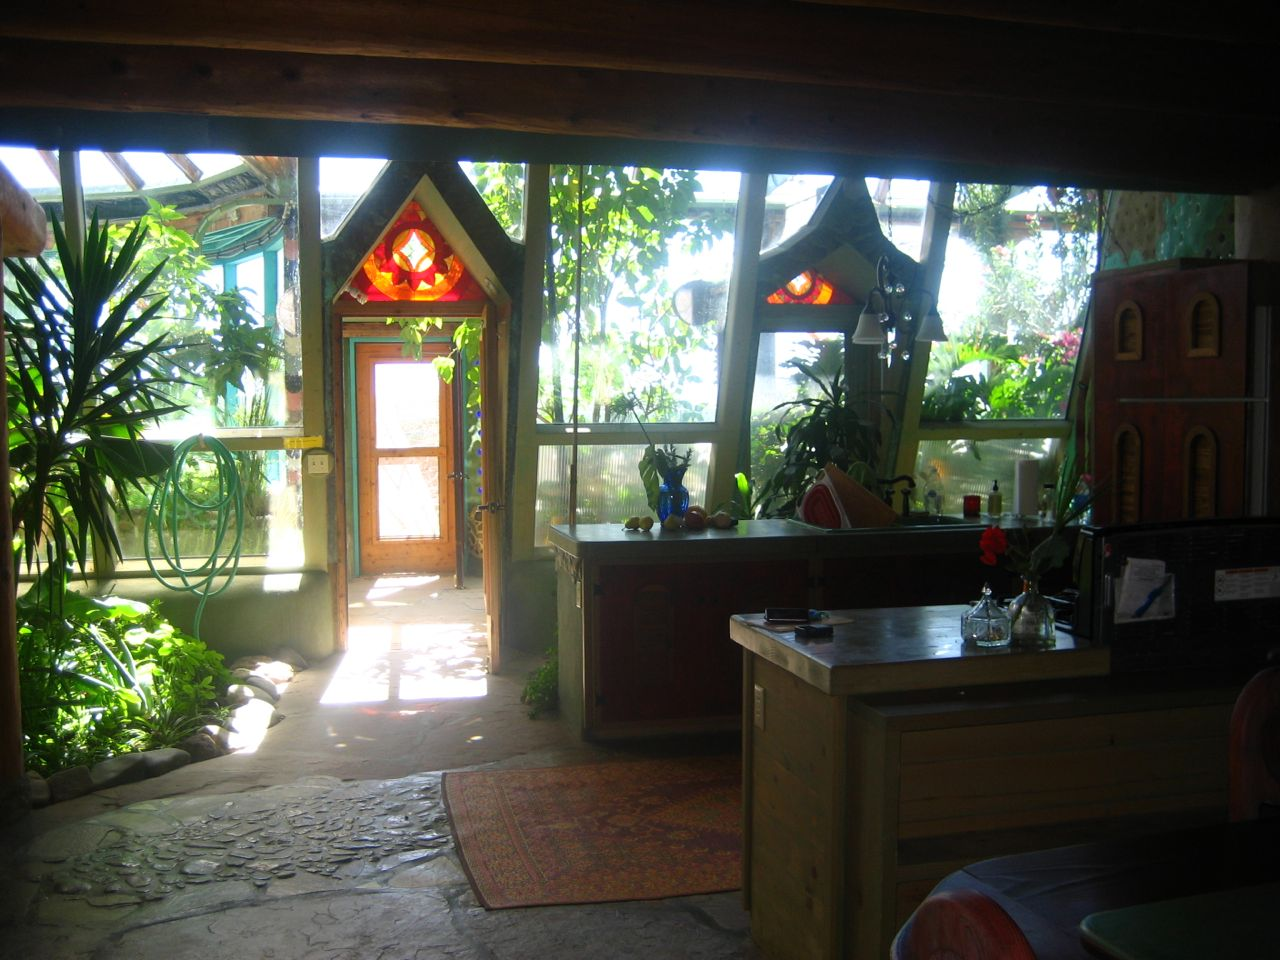 Earthship2 Earthships Contain Use And